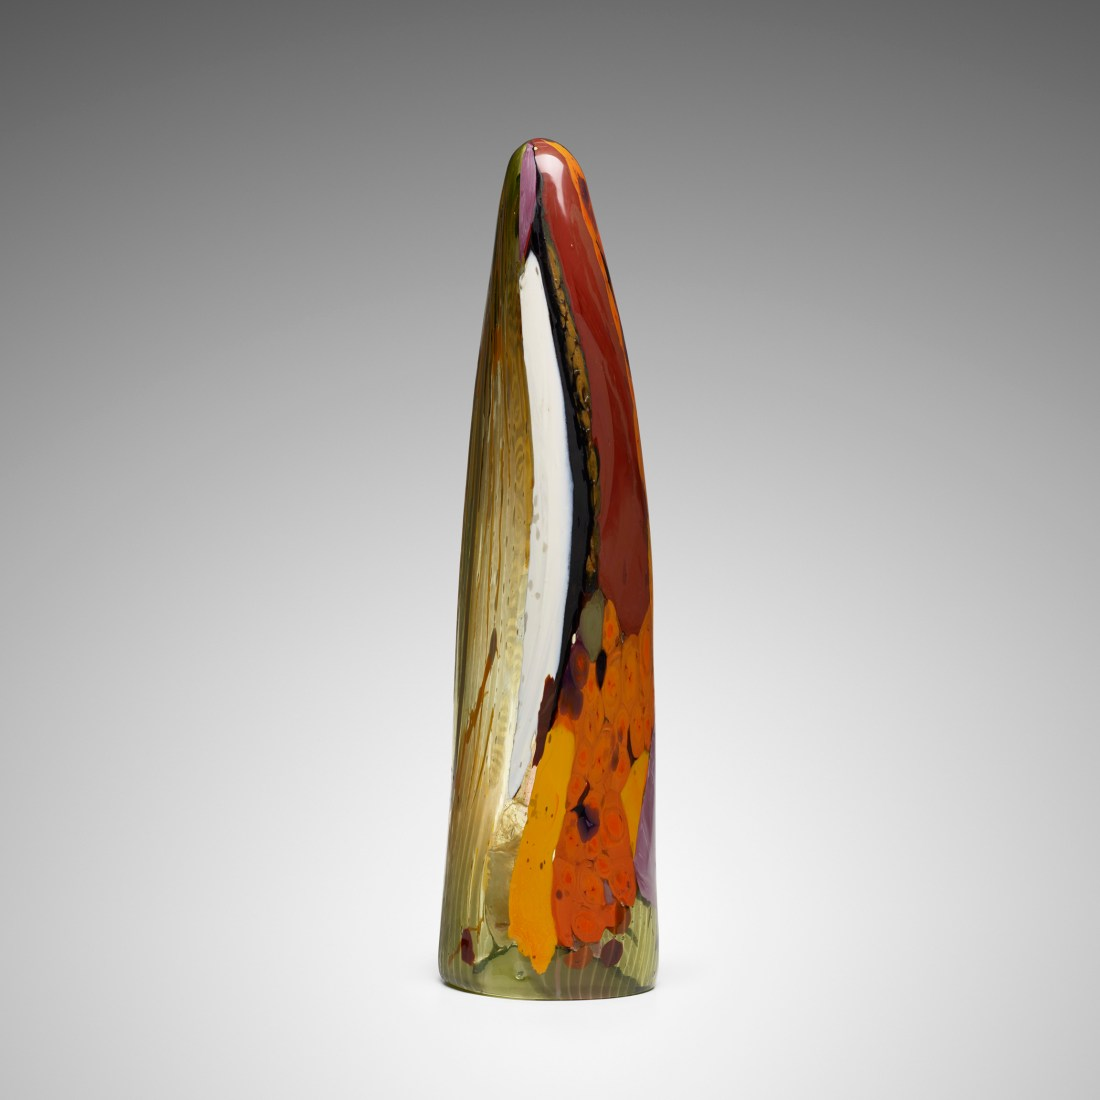 One of the three elements of La Sentinella di Venezia (The Sentinel of Venice), a 1962 glass sculpture by Thomas Stearns.